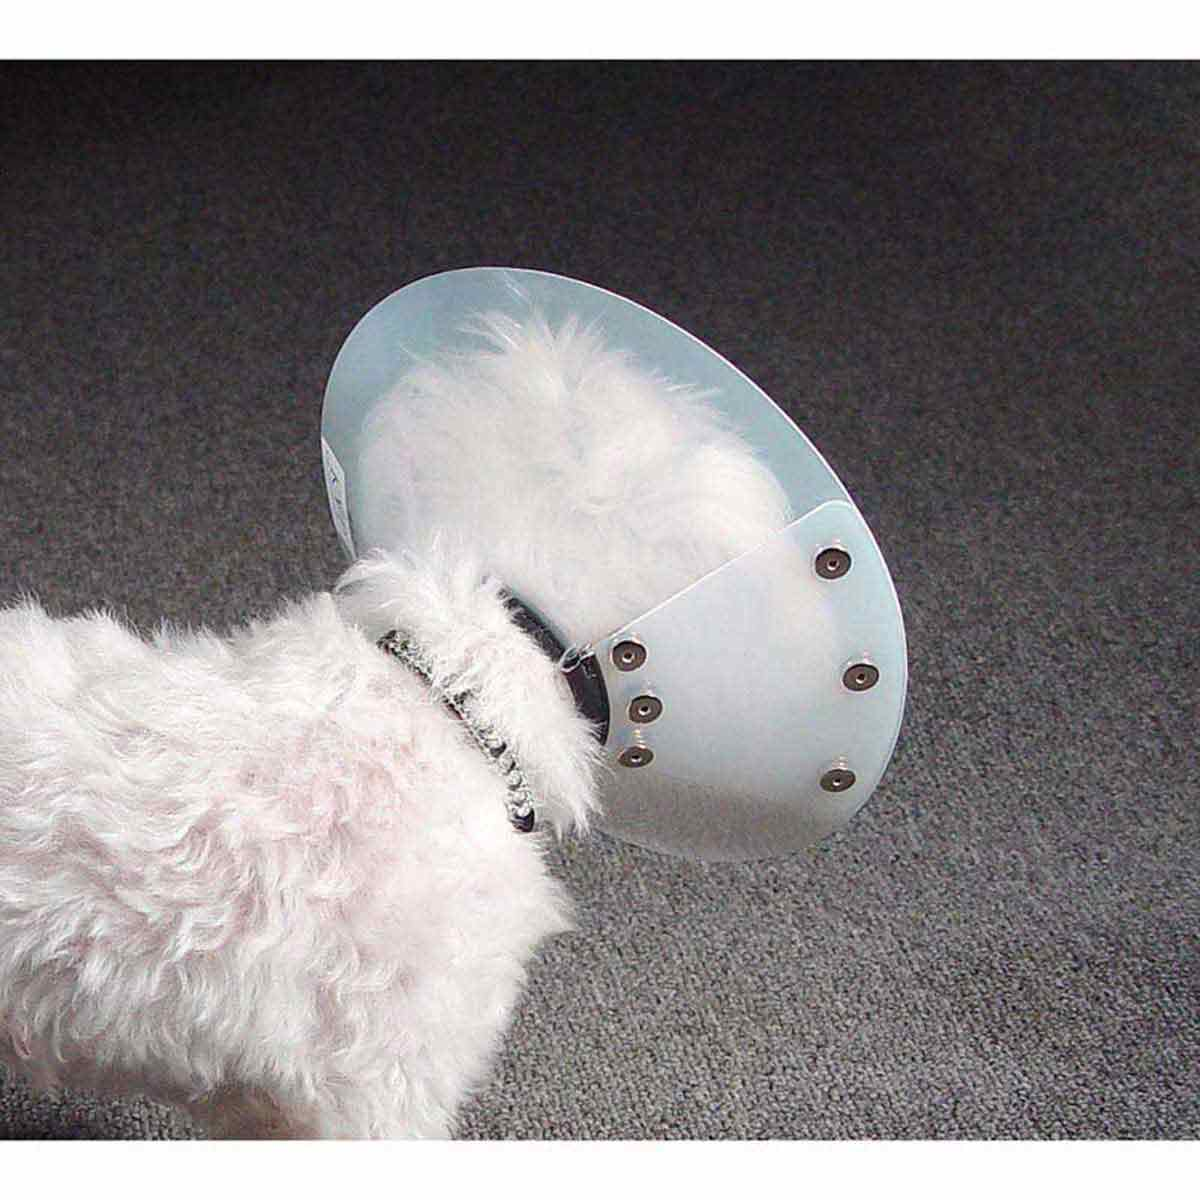 KVP Saf-T-Shield Elizabethan Collar - 13.75-18 inch Opening - View from Behind Dog